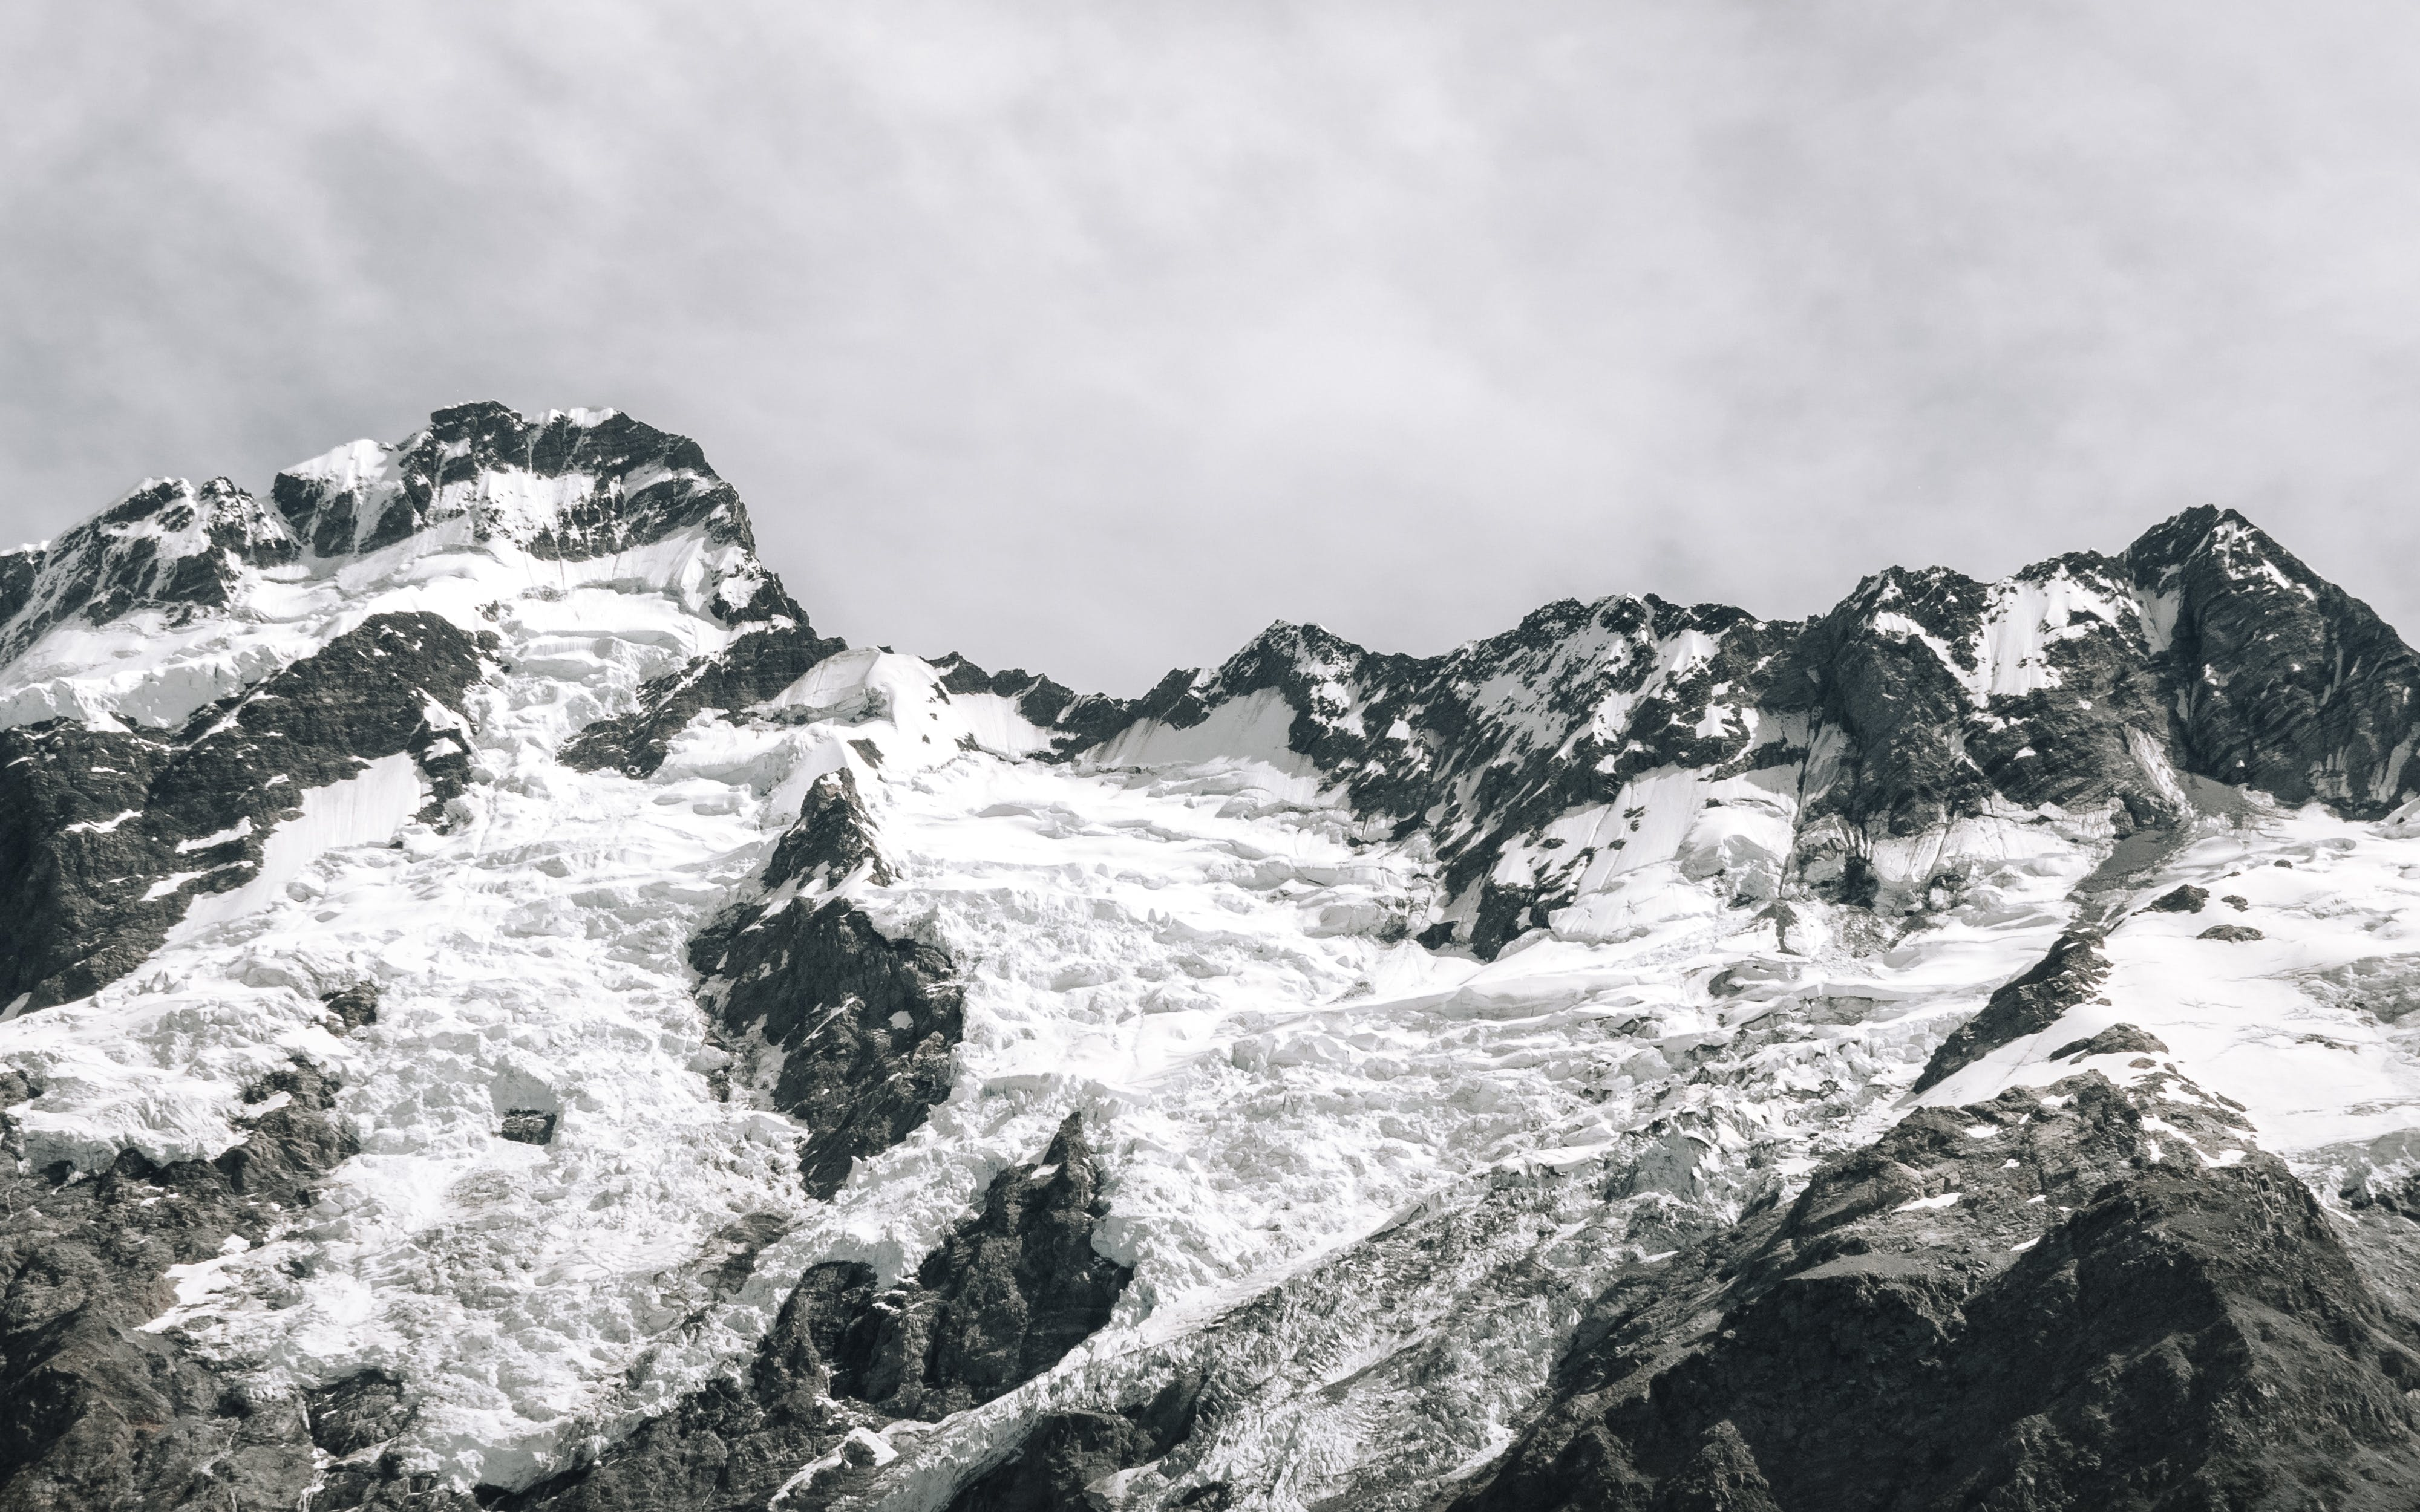 Photography of Snow Capped Mountain